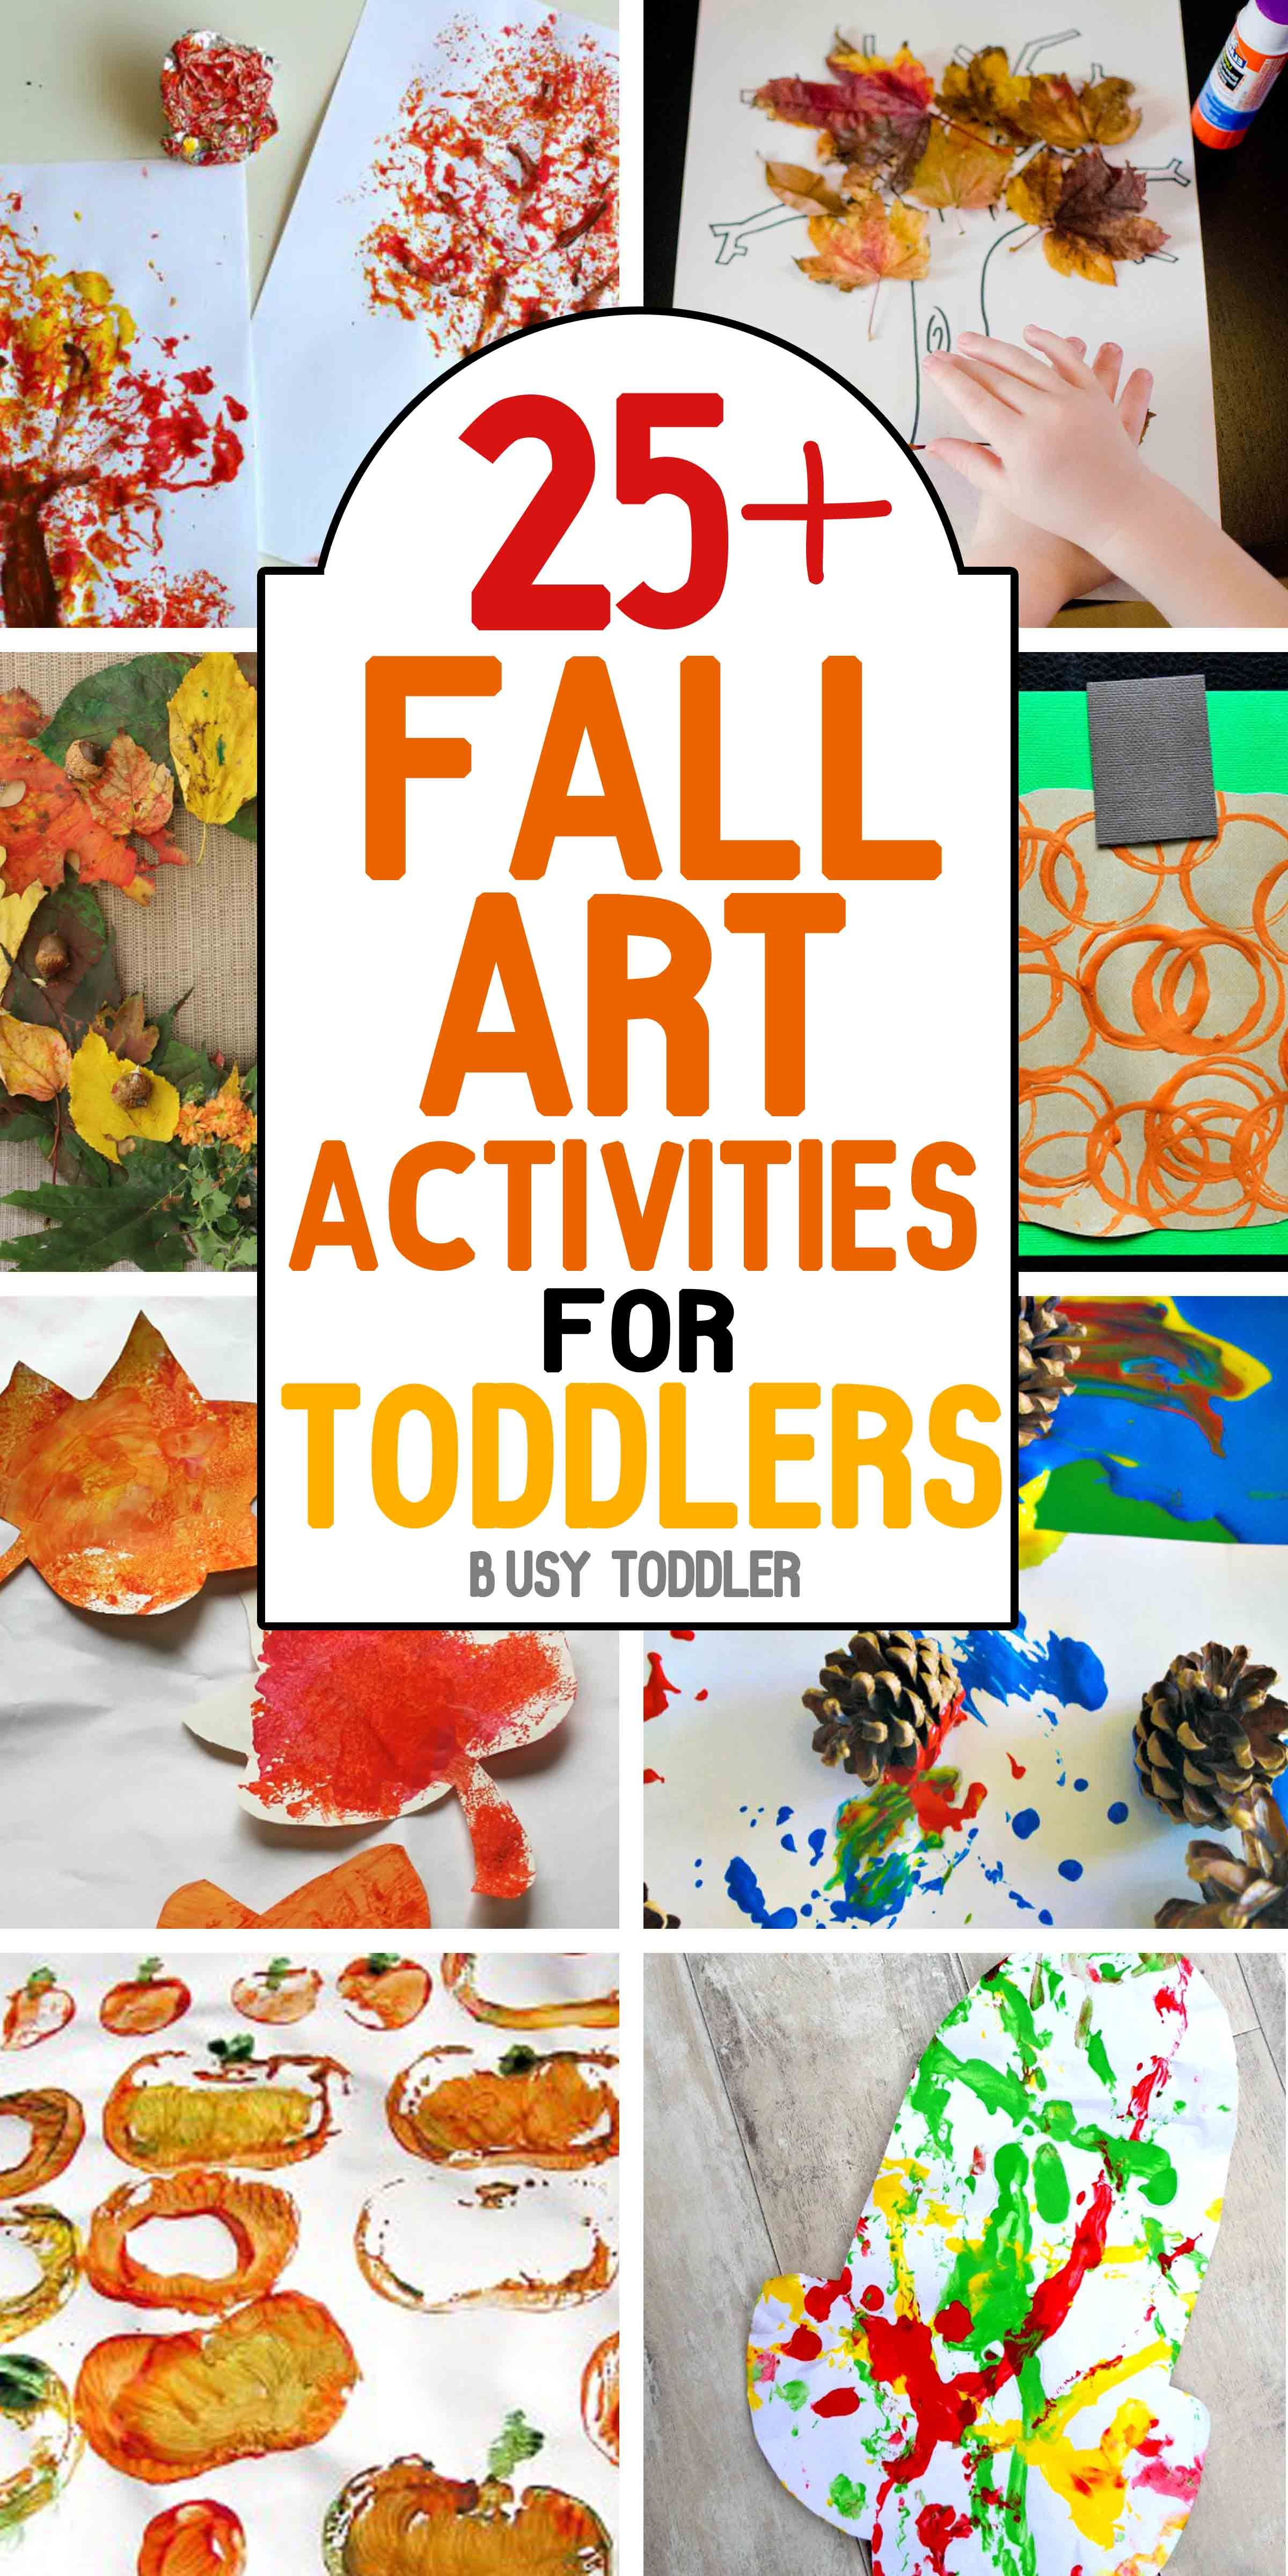 19+ Christmas crafts for toddlers age 3 4 ideas